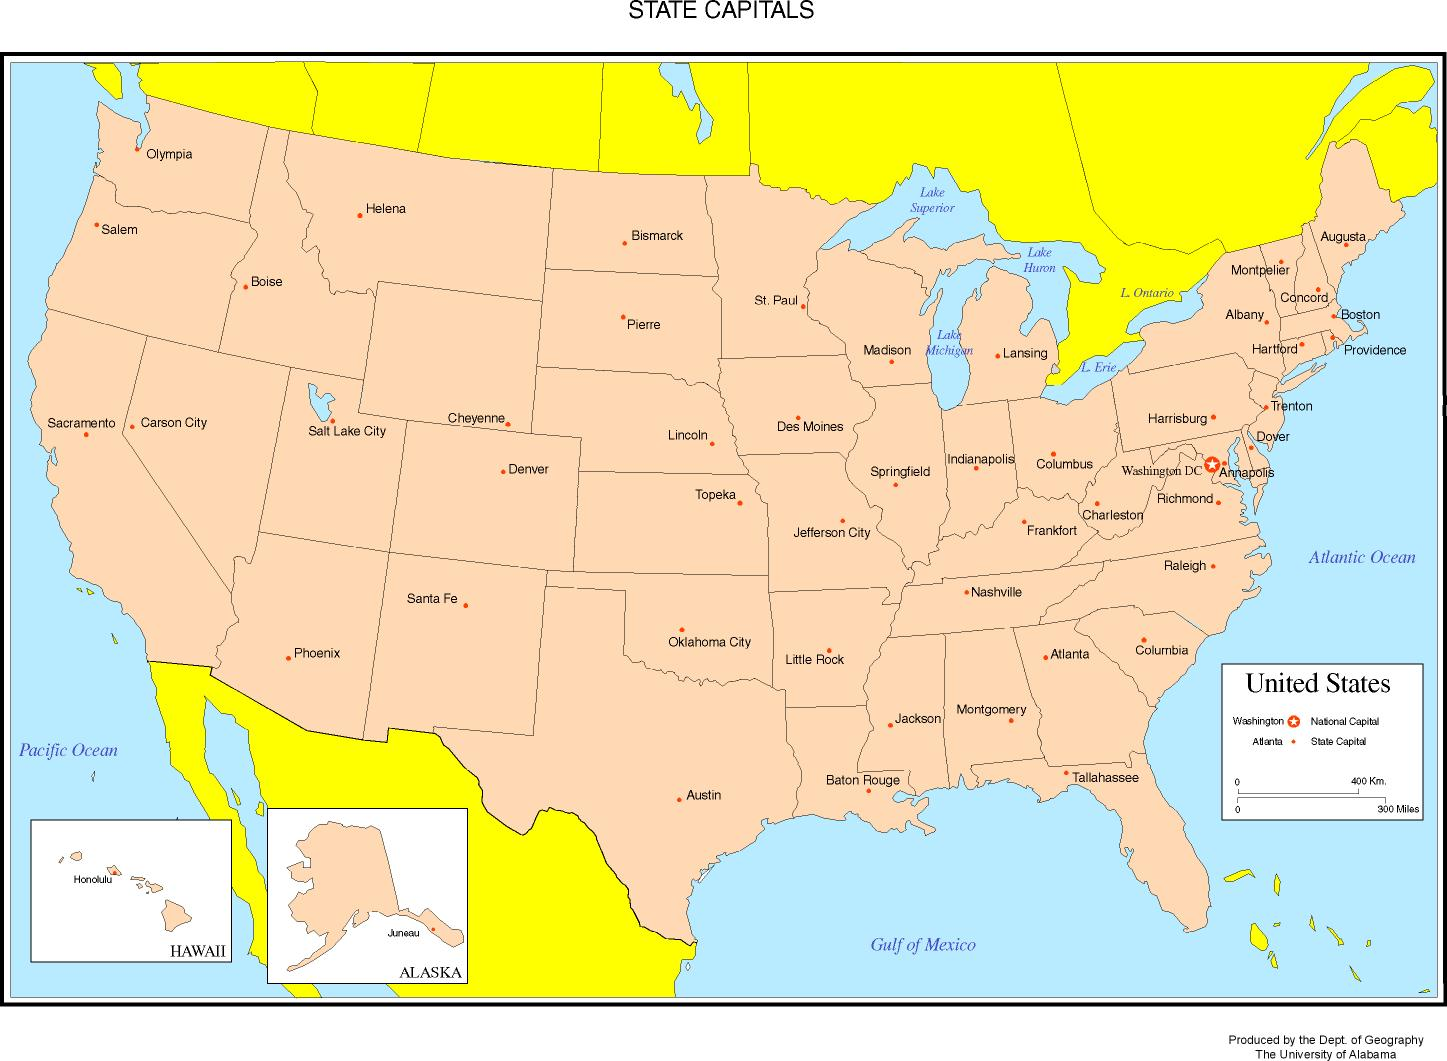 Maps Of The United States - Maps of the us states